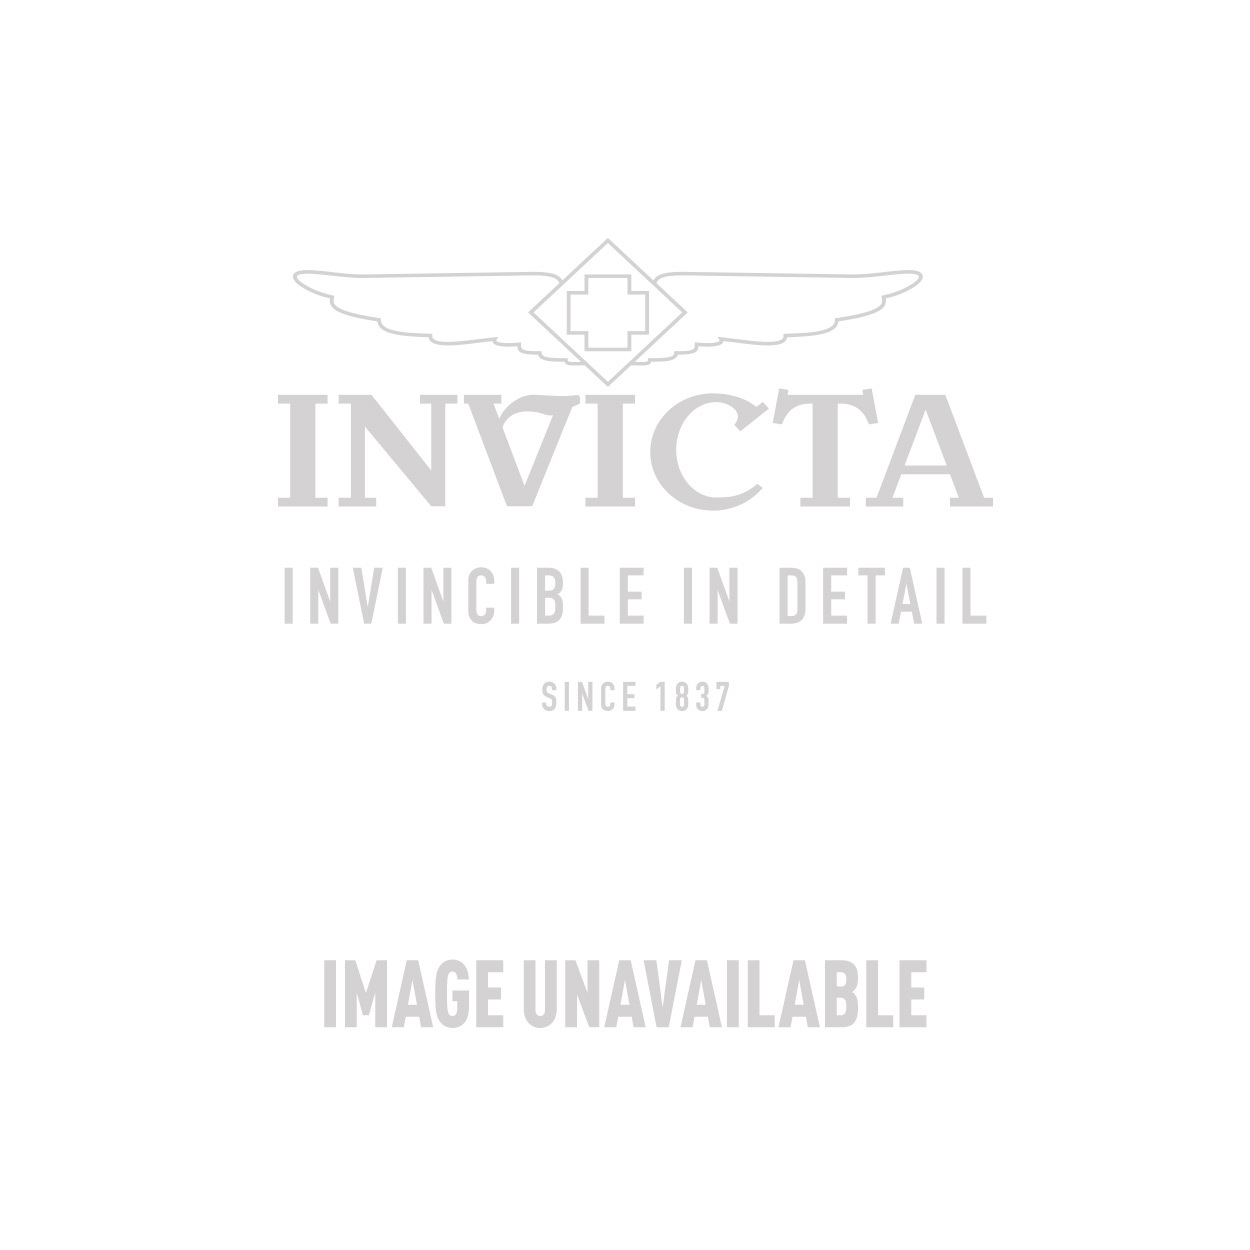 Invicta Excursion Swiss Made Quartz Watch - Gold, Stainless Steel case with Steel, Gold tone Stainless Steel band - Model 90041